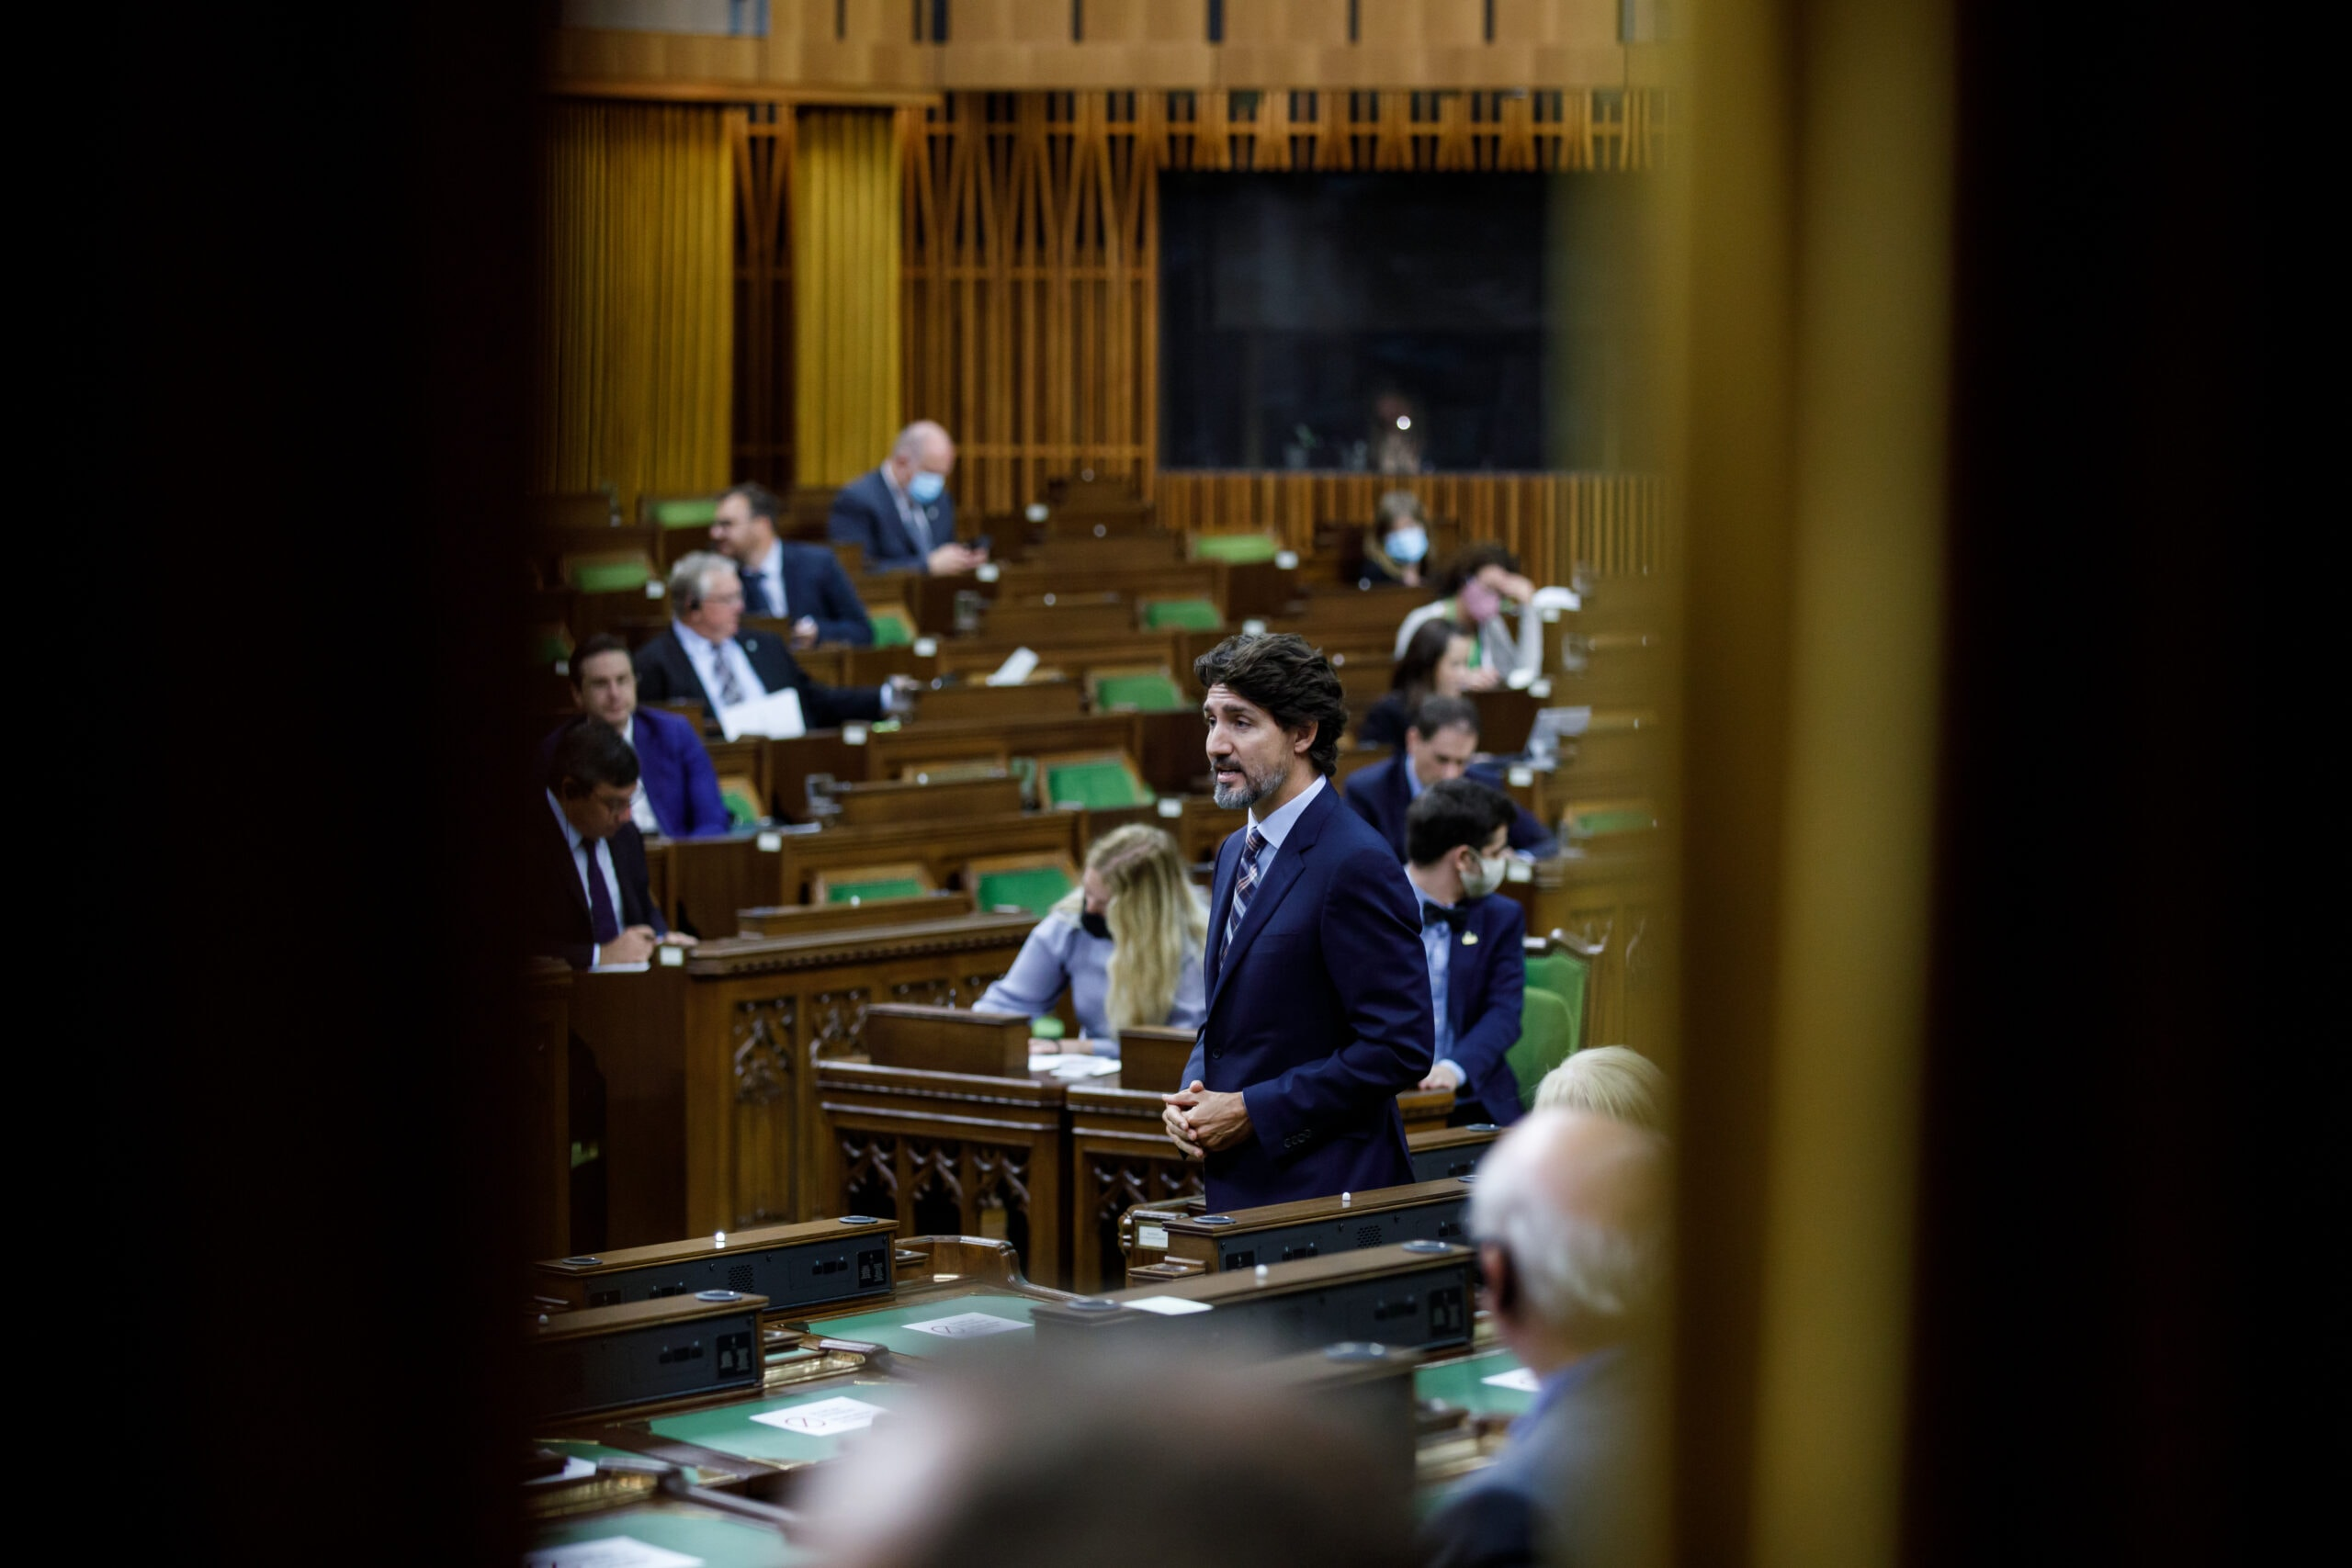 trudeau speaks in house of commons